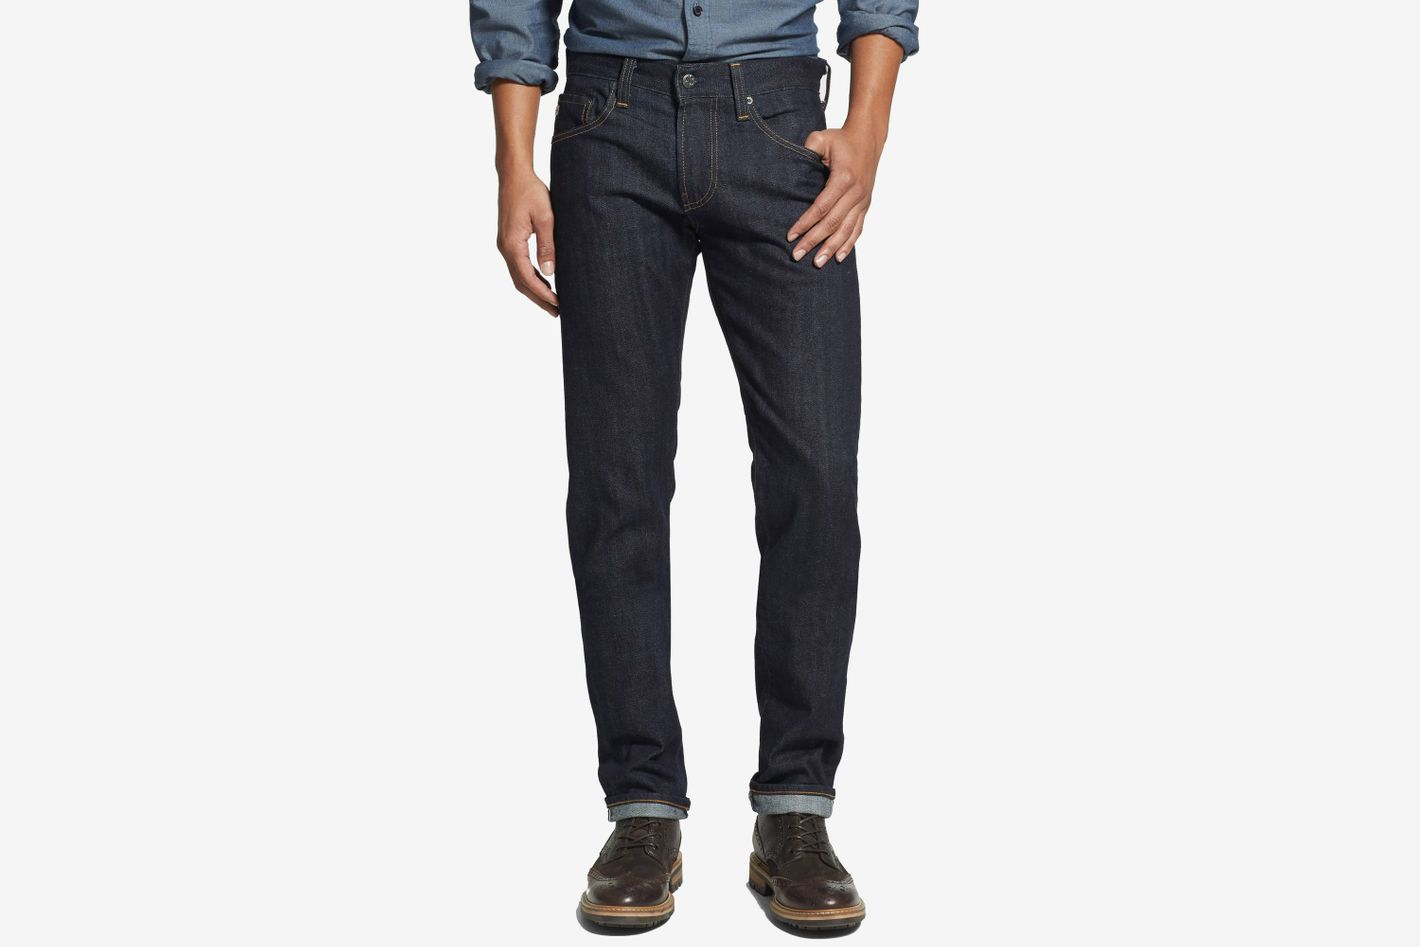 a322b386 The 11 Best Pairs of High-Rise Jeans for Men